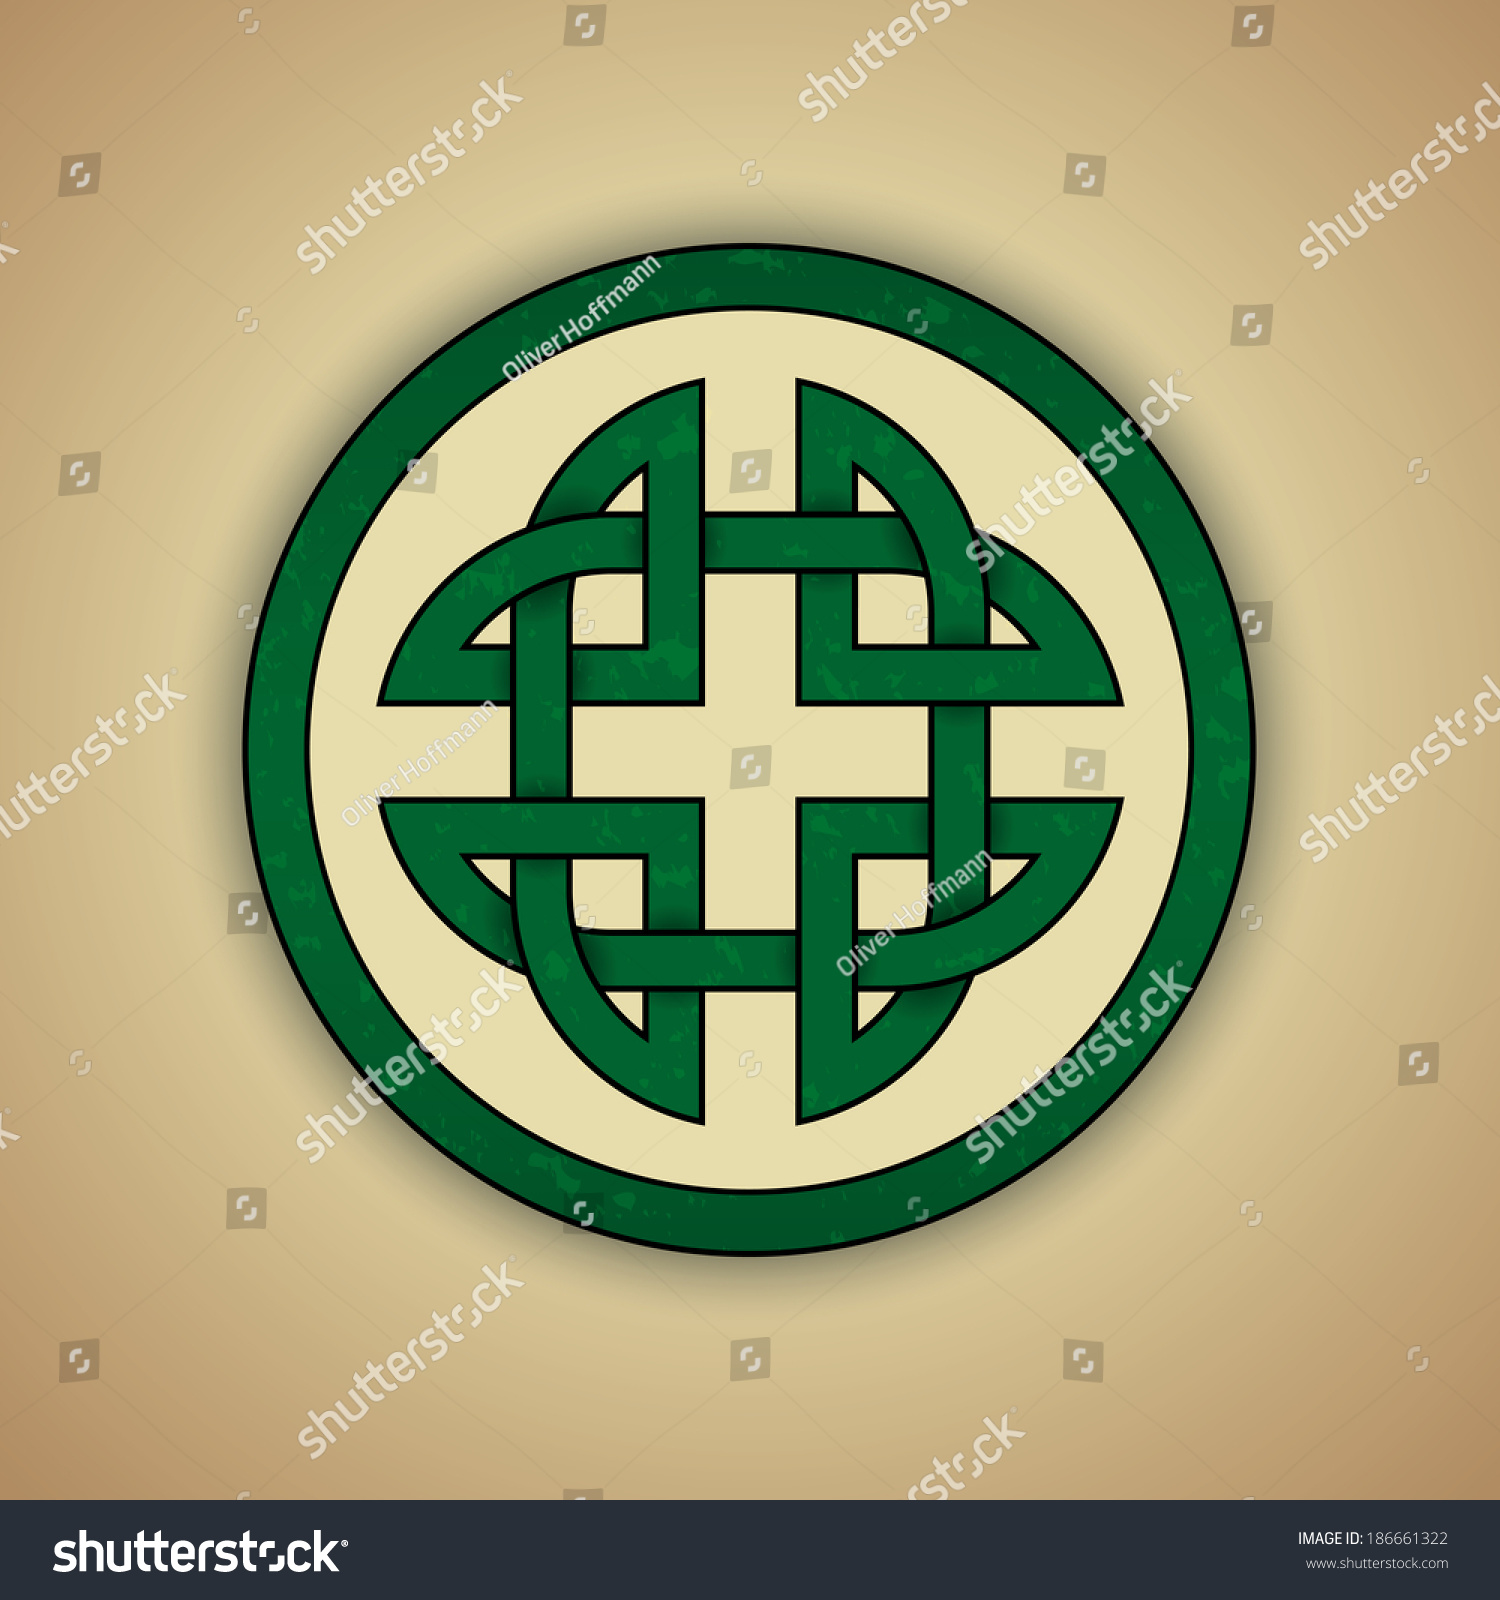 Cherokee symbol for strength gallery symbol and sign ideas celtic symbol for strength images symbol and sign ideas celtic knot symbol strength vector illustration stock buycottarizona